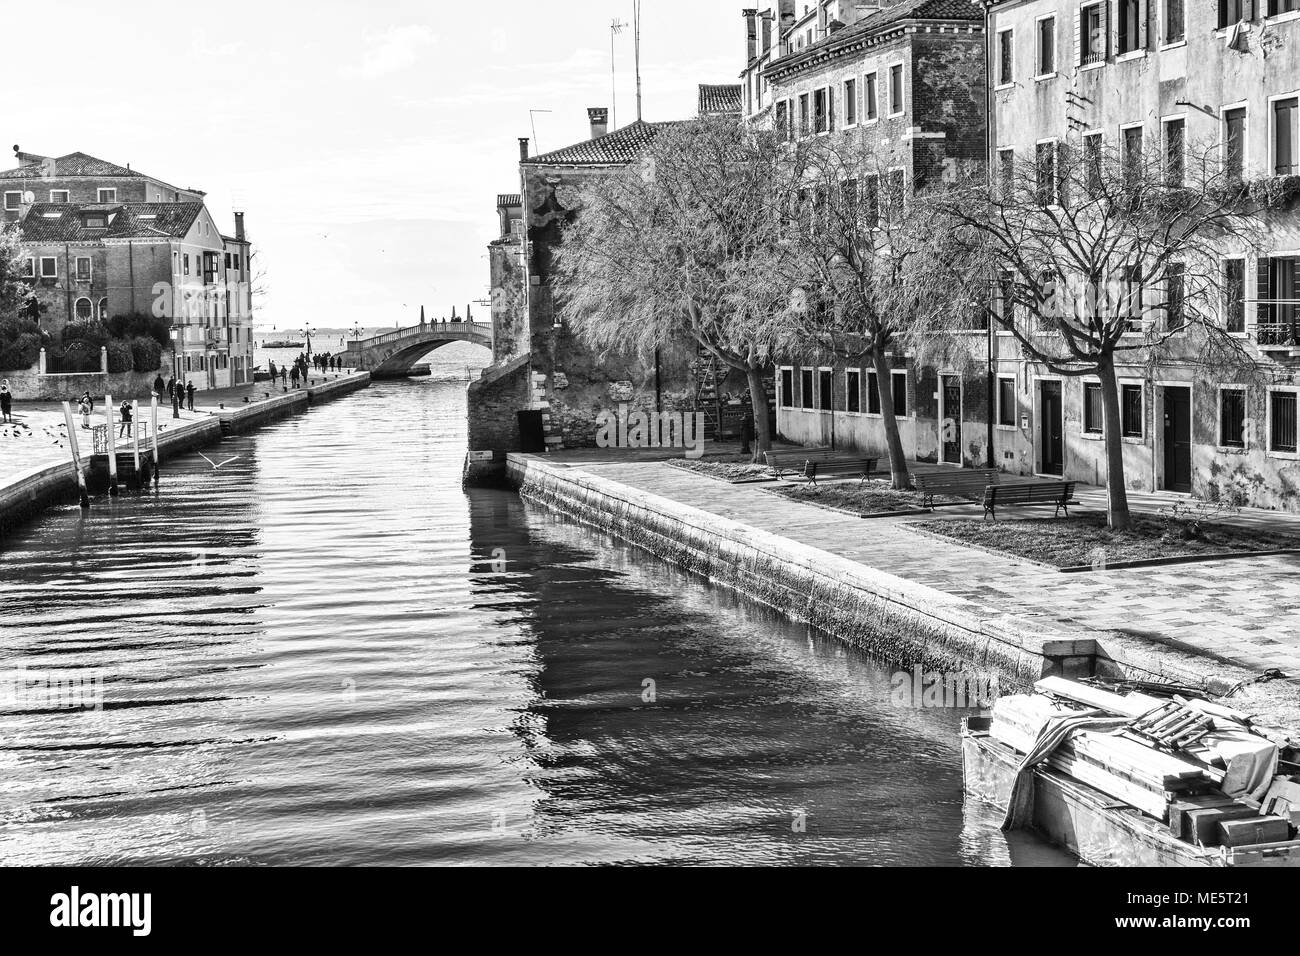 Venice, Arsenale: the Venetian Arsenal is a complex of former shipyards and armories - Stock Image